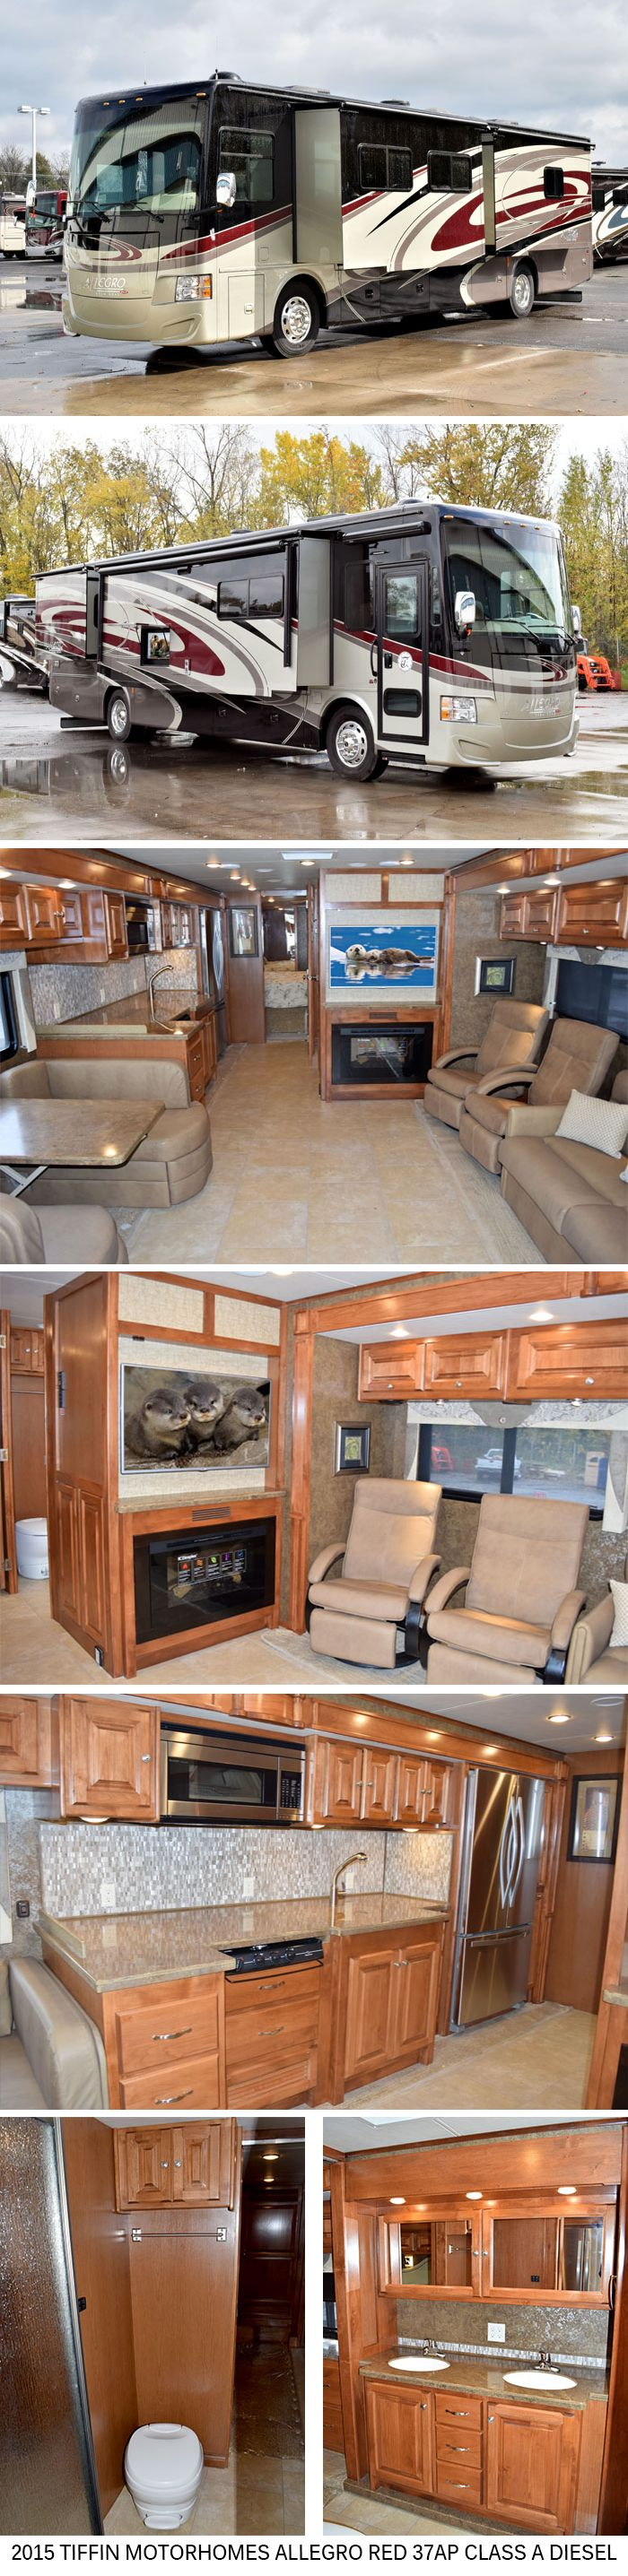 NEW ! 2015 Tiffin Motorhomes Allegro Red 37PA Class A Diesel